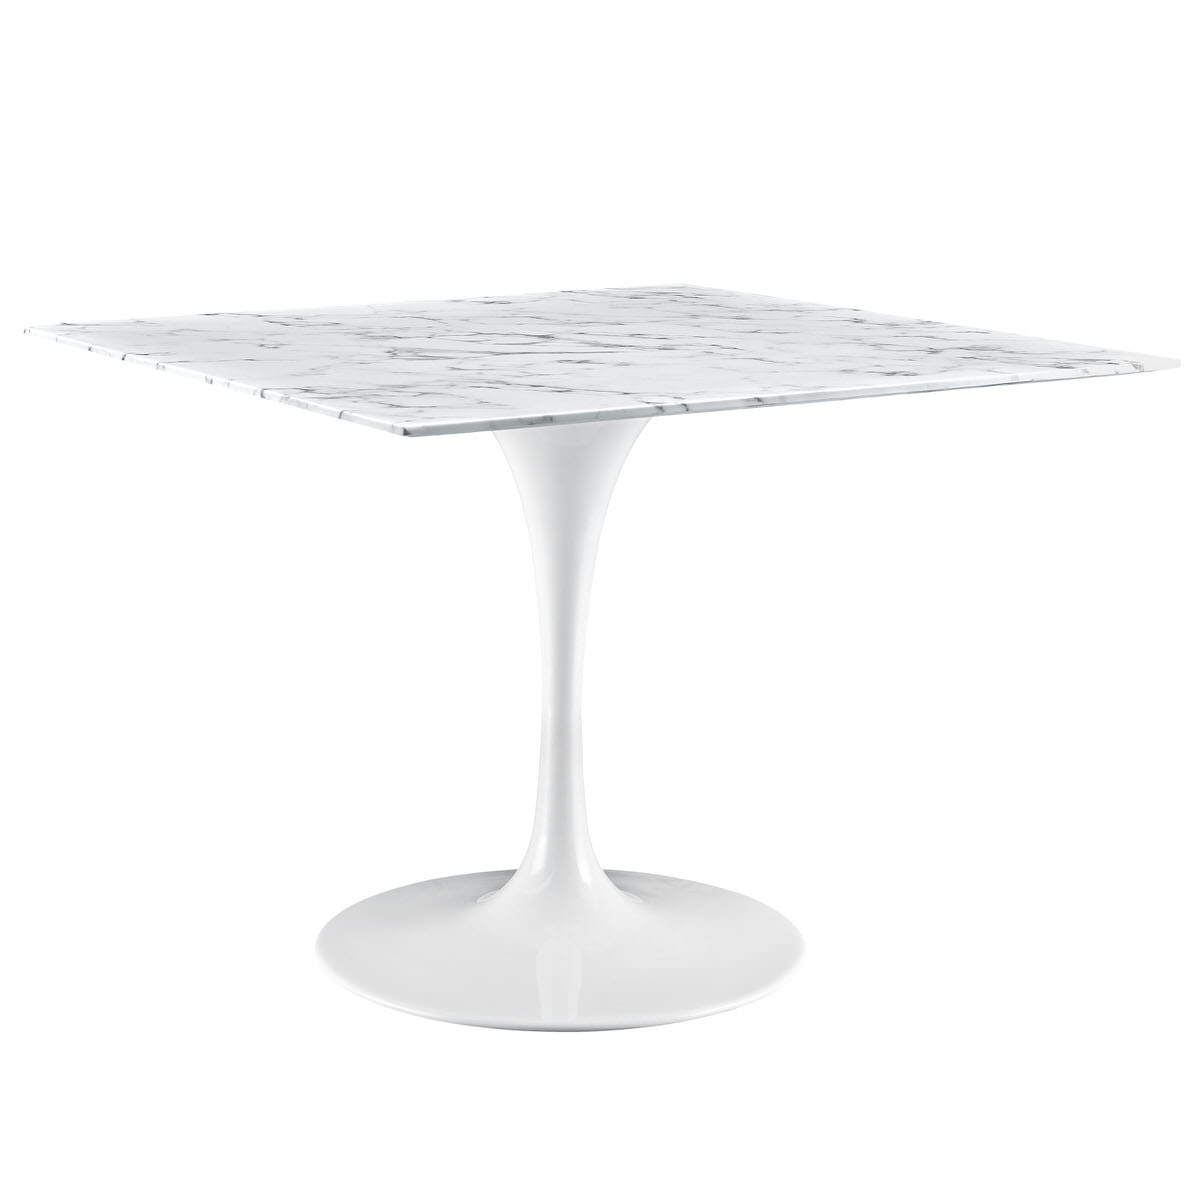 Lippa 40 inch square artificial marble dining table white by modway watchthetrailerfo